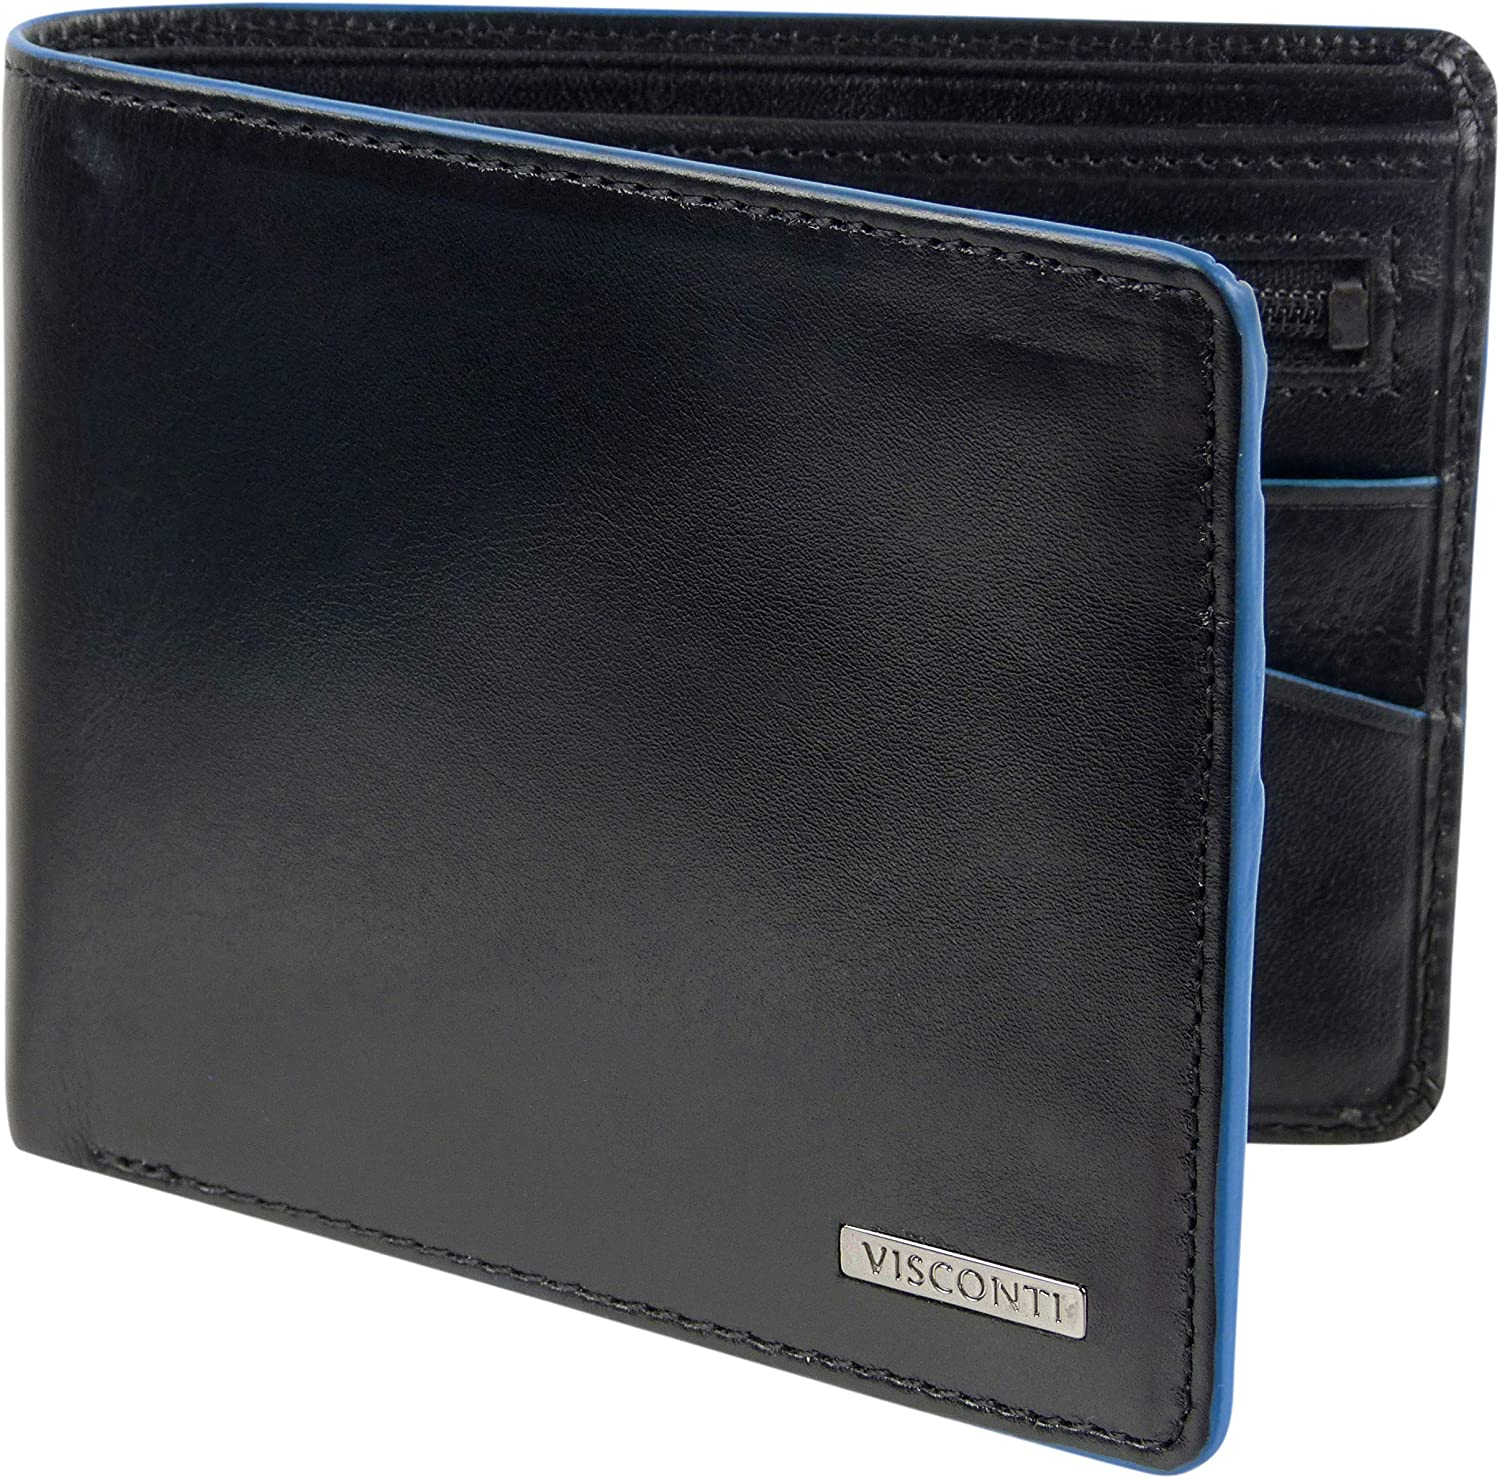 Mens Italian Leather Stylish RFID Protected Tri-Fold Wallet by Visconti Gift Box